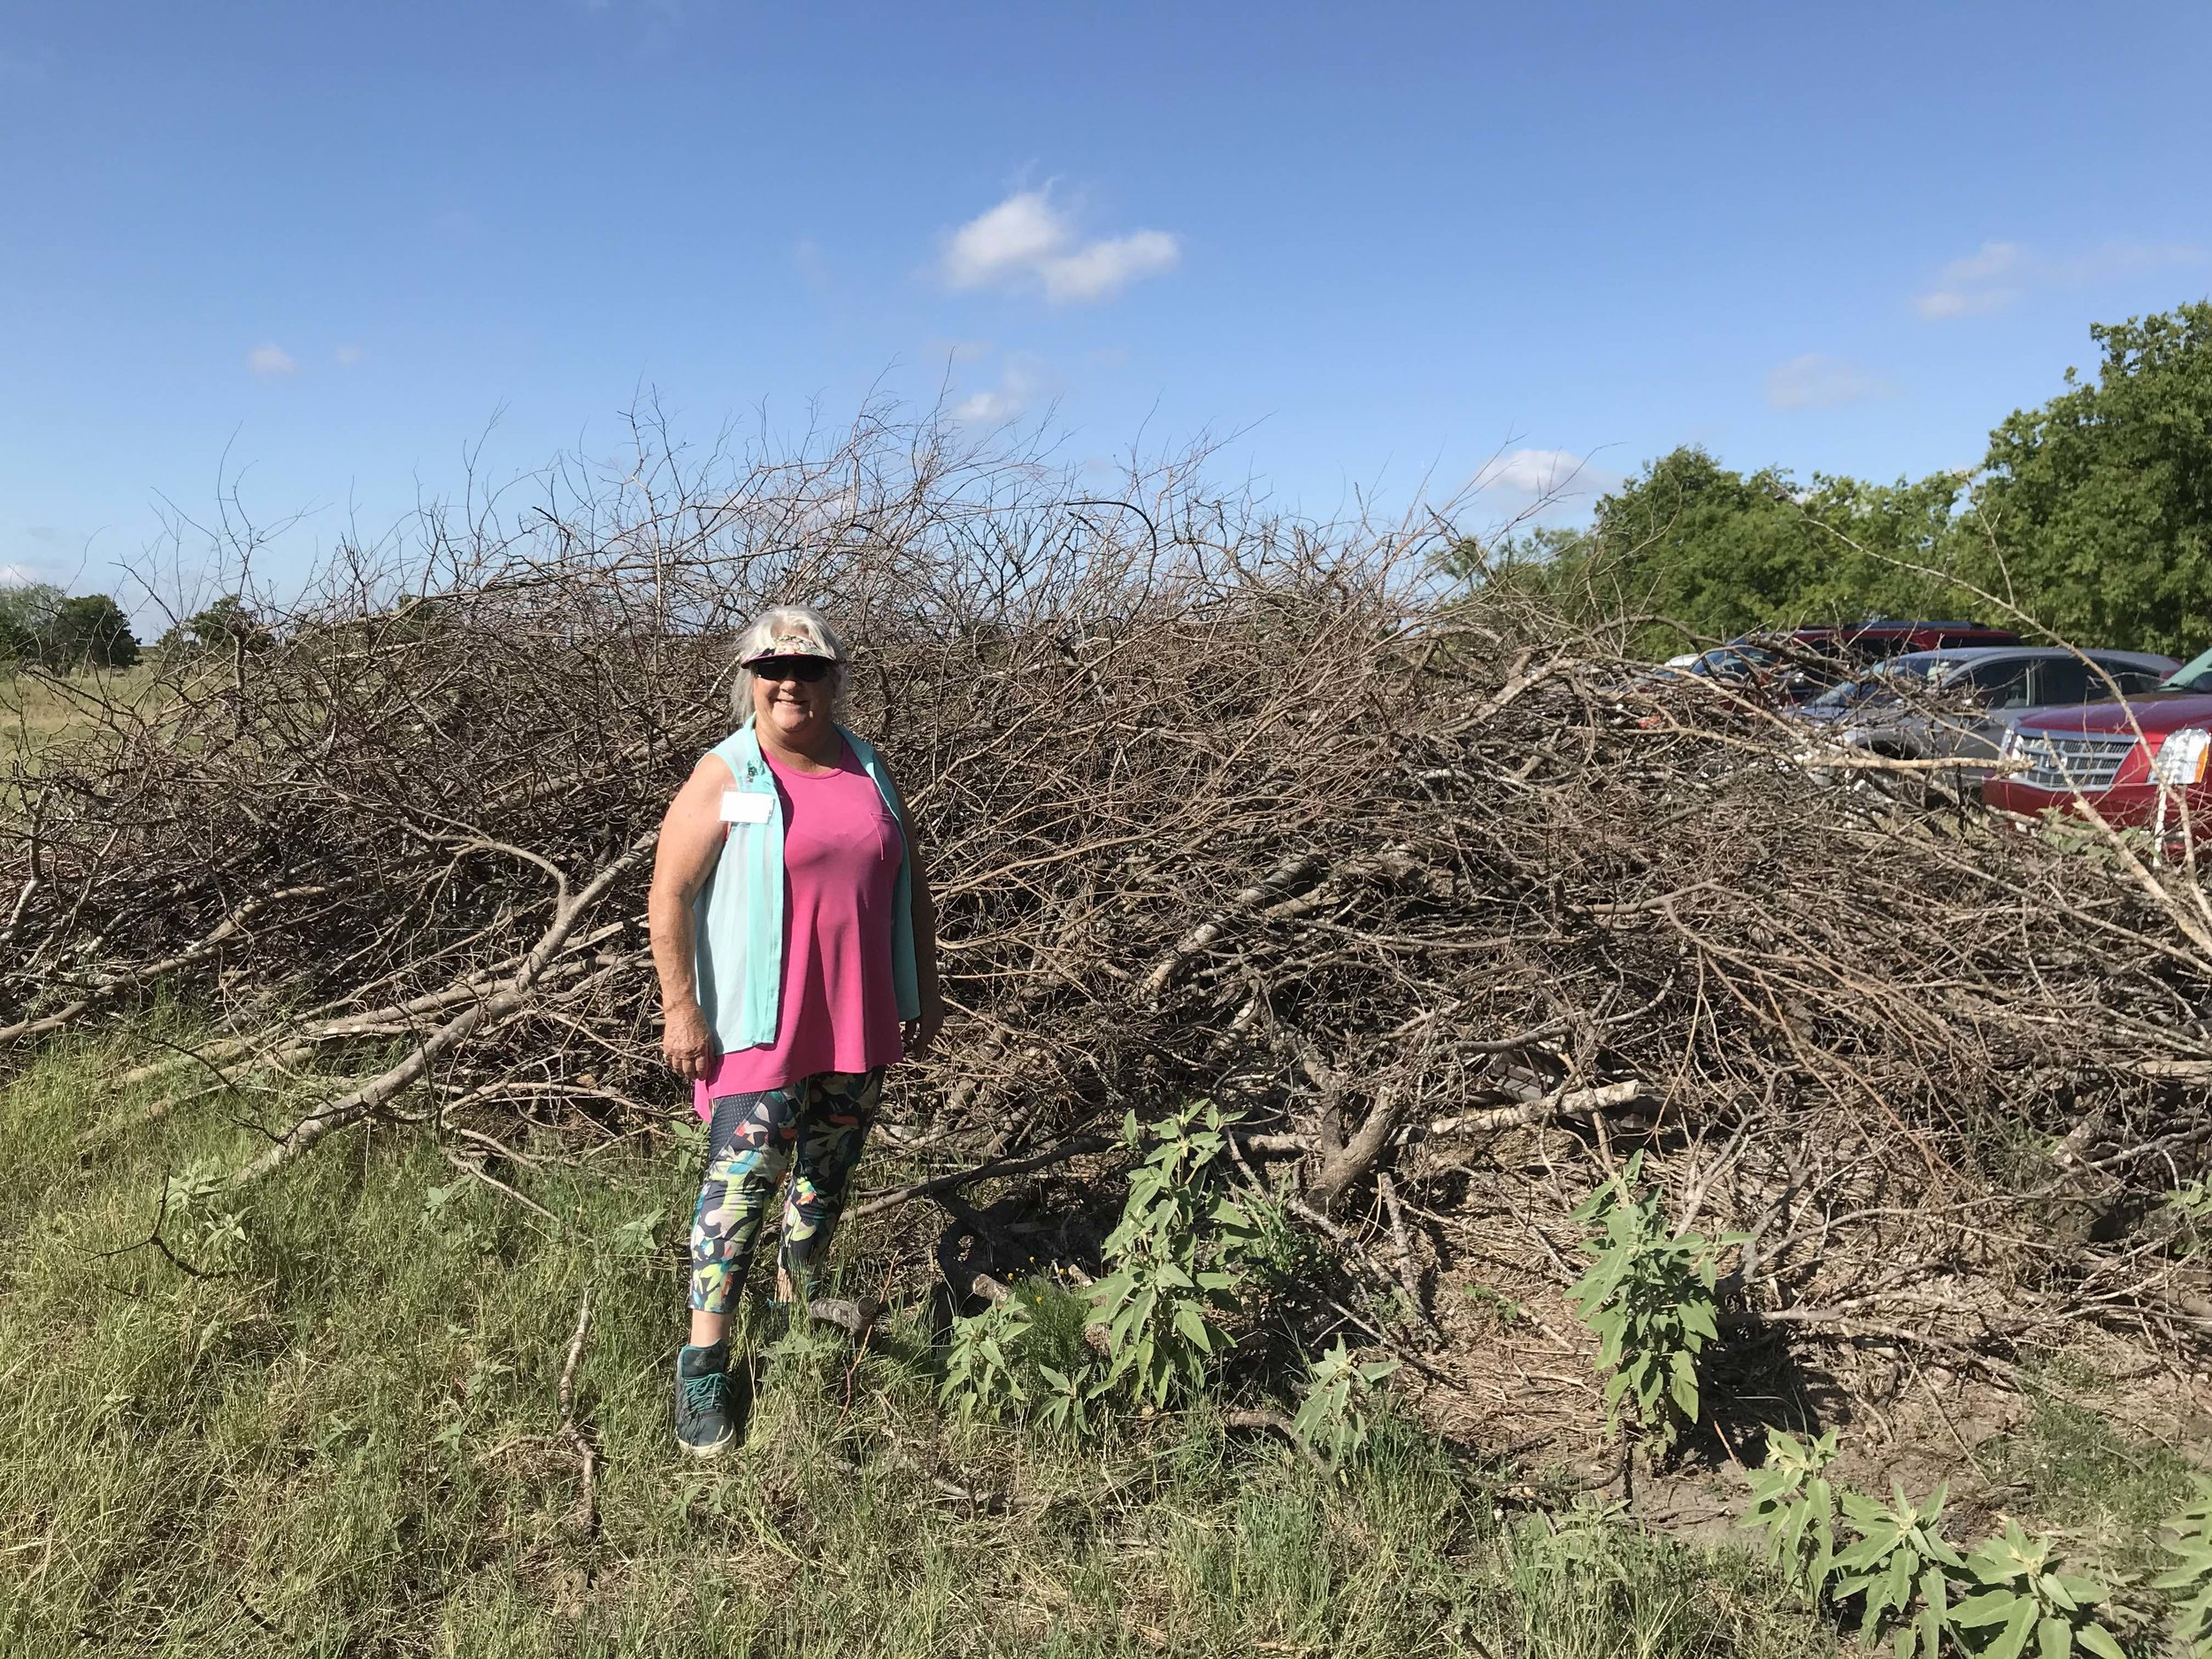 A garden club member was impressed by our intentional brush piles for wildlife habitat, because everyone loves a home for bunnies! (photo by Heather White)